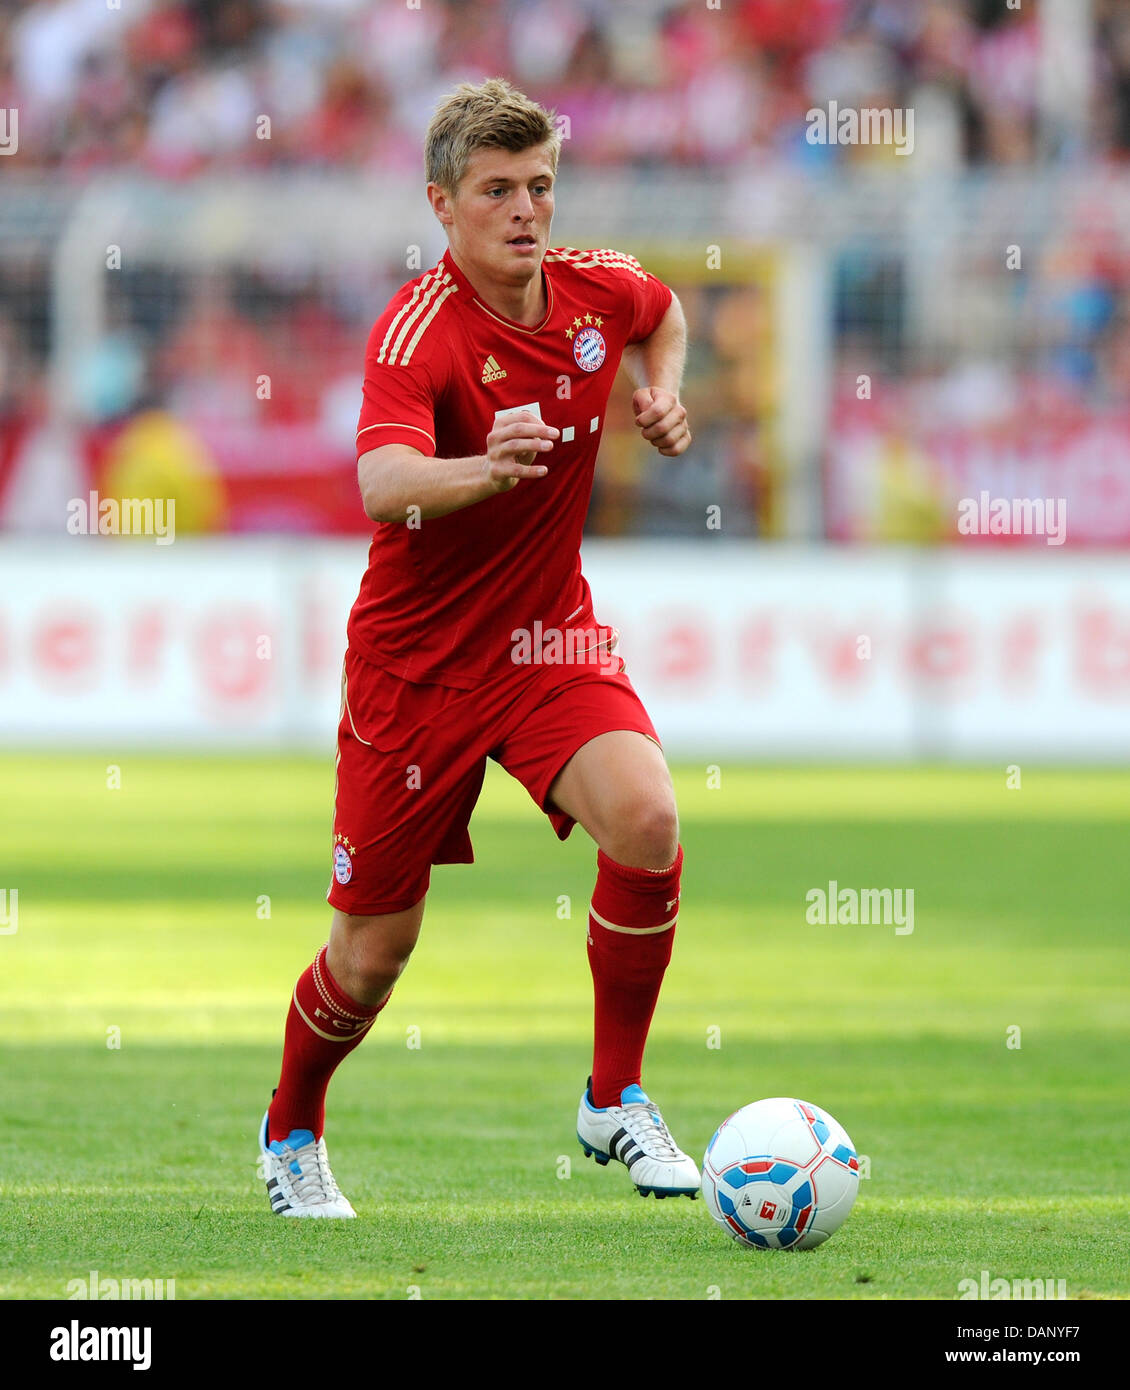 Toni Kroos of FC Bayern Munich controls the ball during the friendly Stock  Photo - Alamy